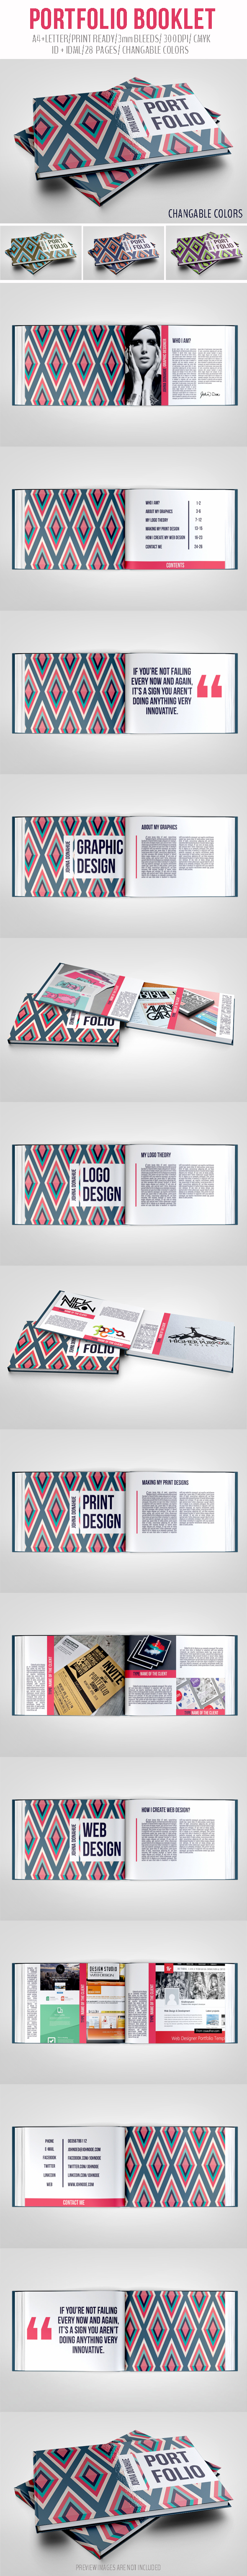 portfolio Booklet brochure template InDesign Layout pettern clean elegant personal a4 letter illustrated informational agency